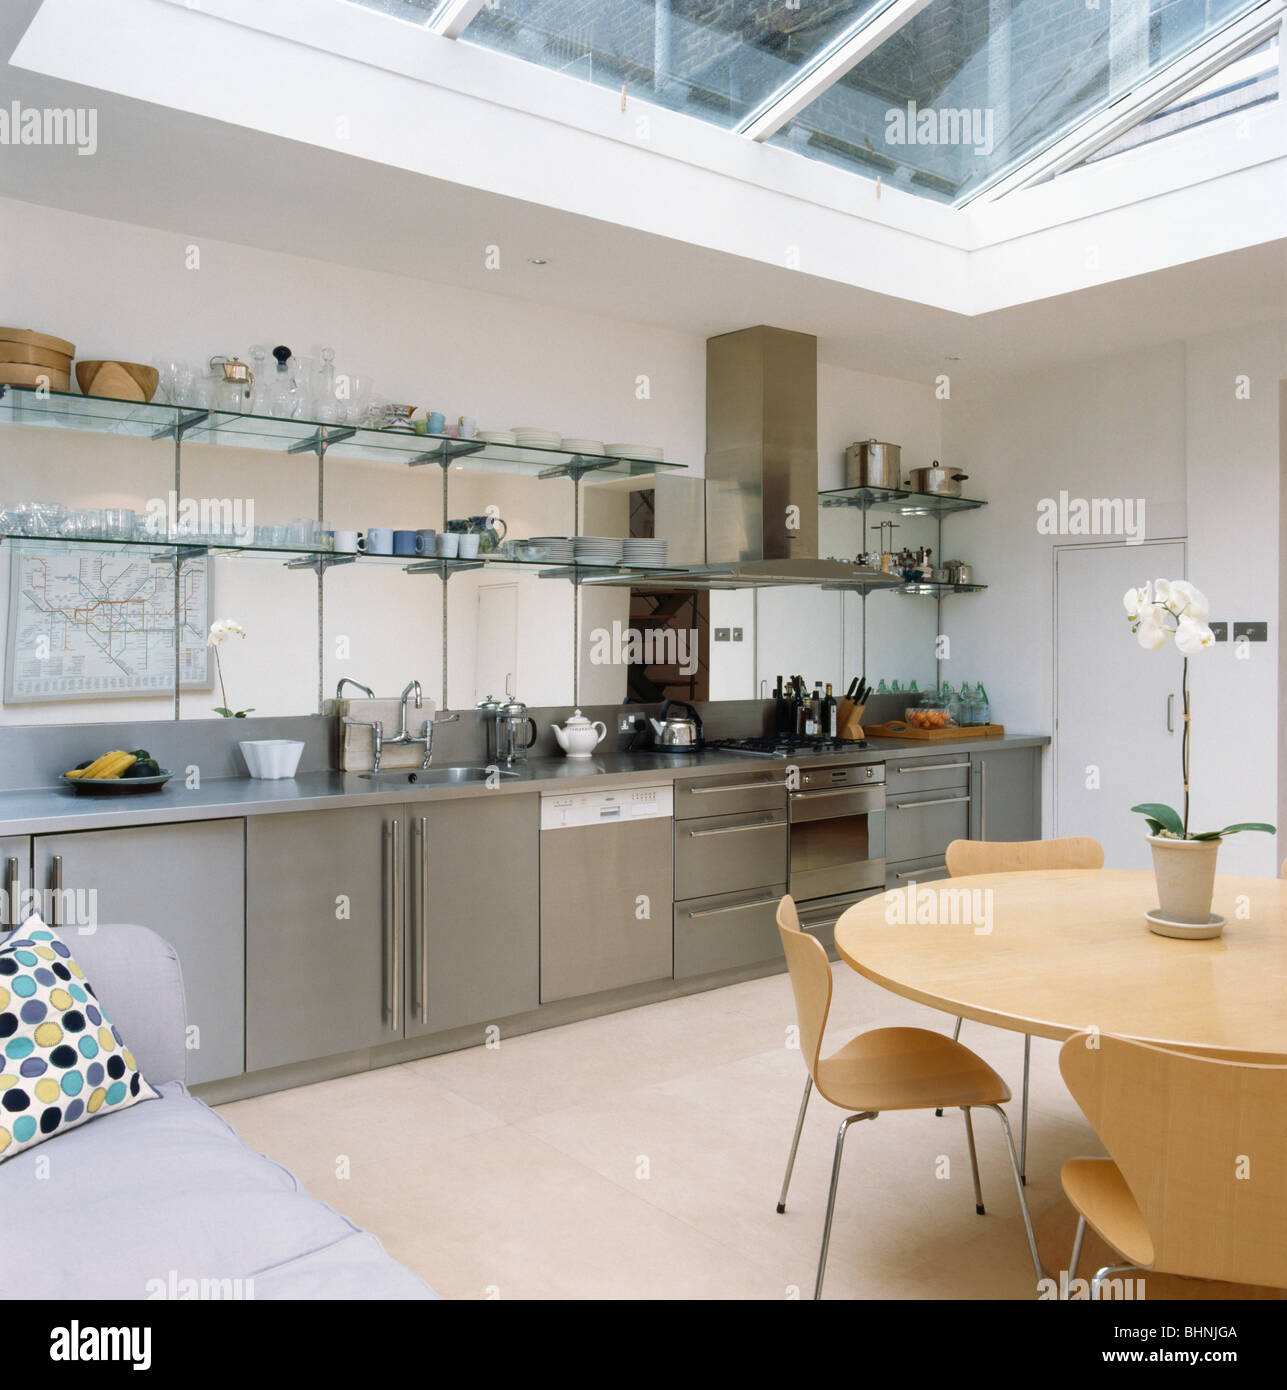 glass shelving above stainless steel fitted units in modern kitchen rh alamy com